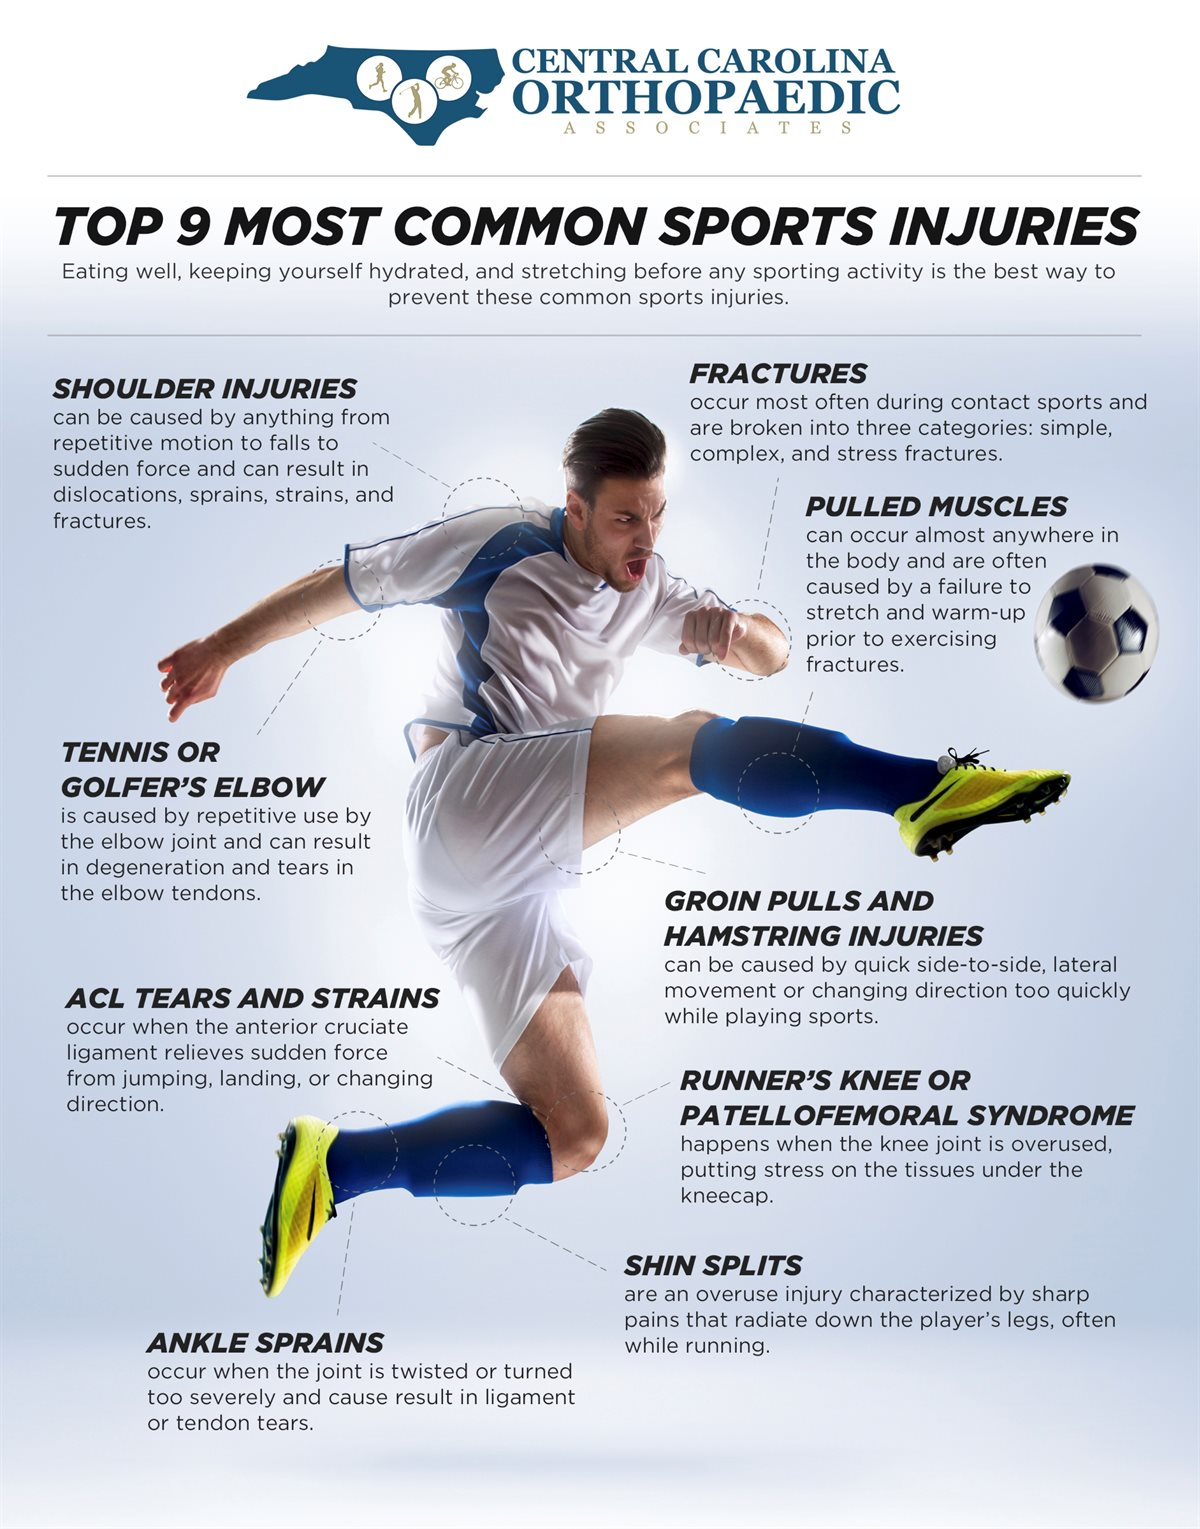 Top 9 Most Common Sports Injuries